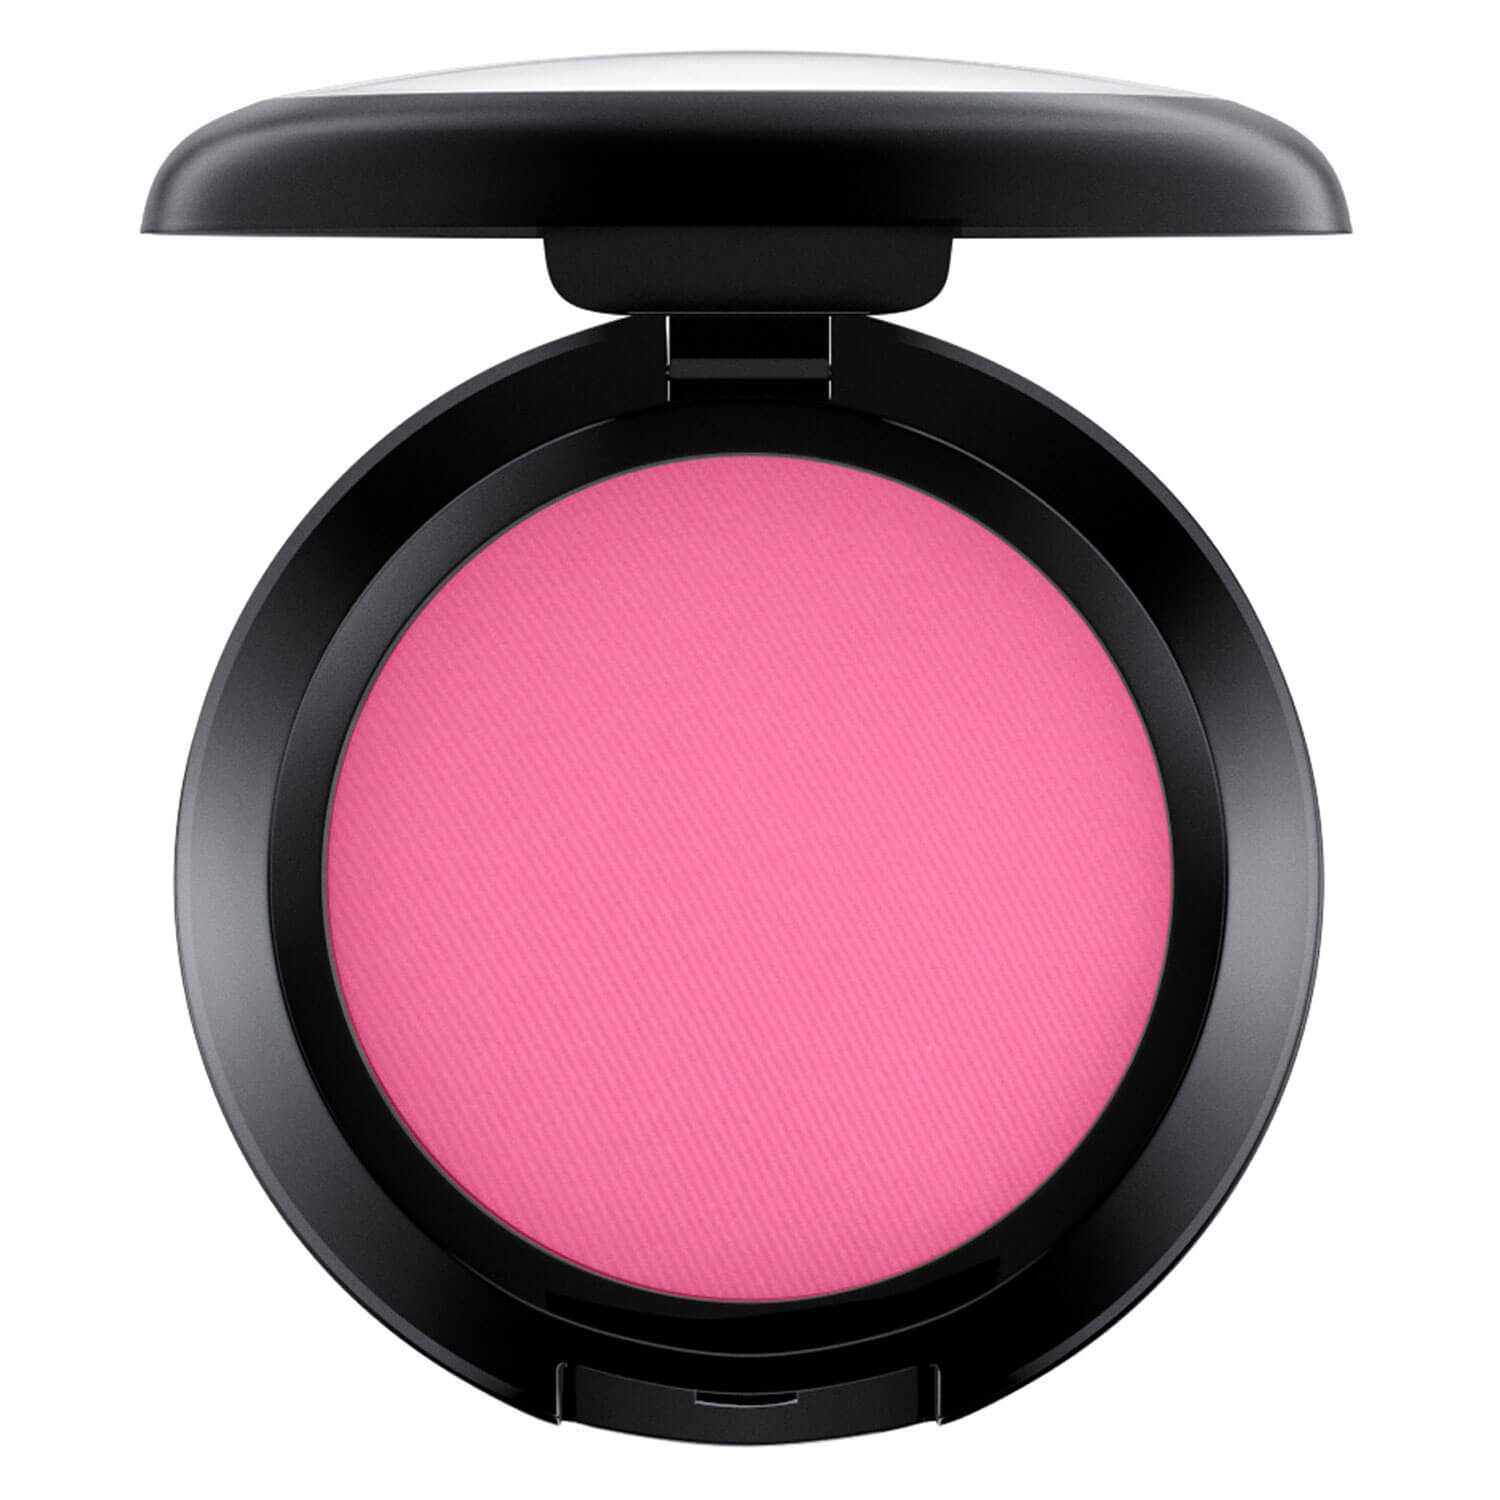 M·A·C In Monochrome - Powder Blush Fashion Frenzy - 6g